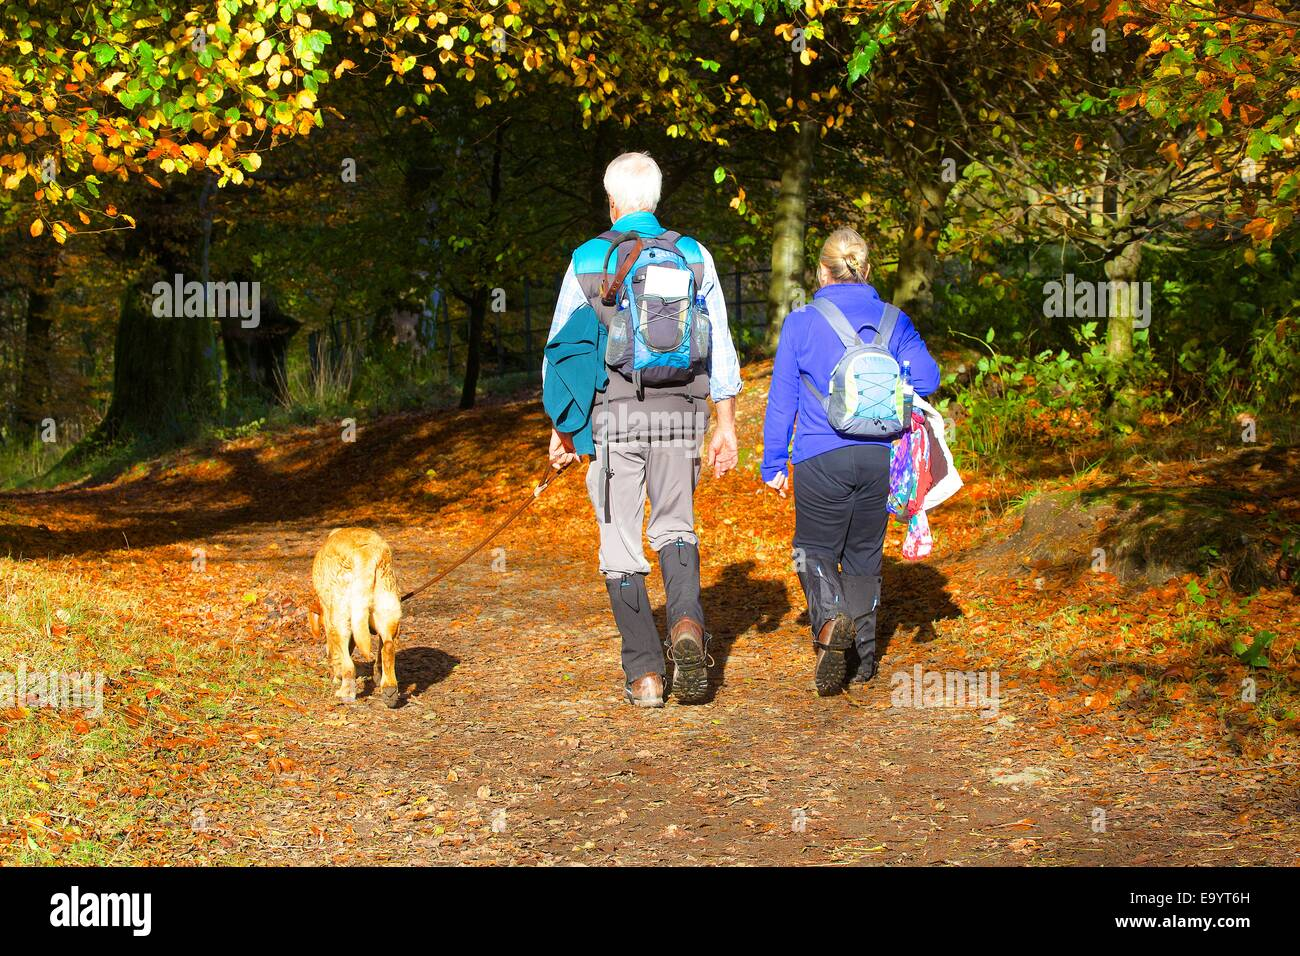 Couple walking in Deer Bolt Woods, Grasmere, The Lake District, Cumbria, England, UK. - Stock Image